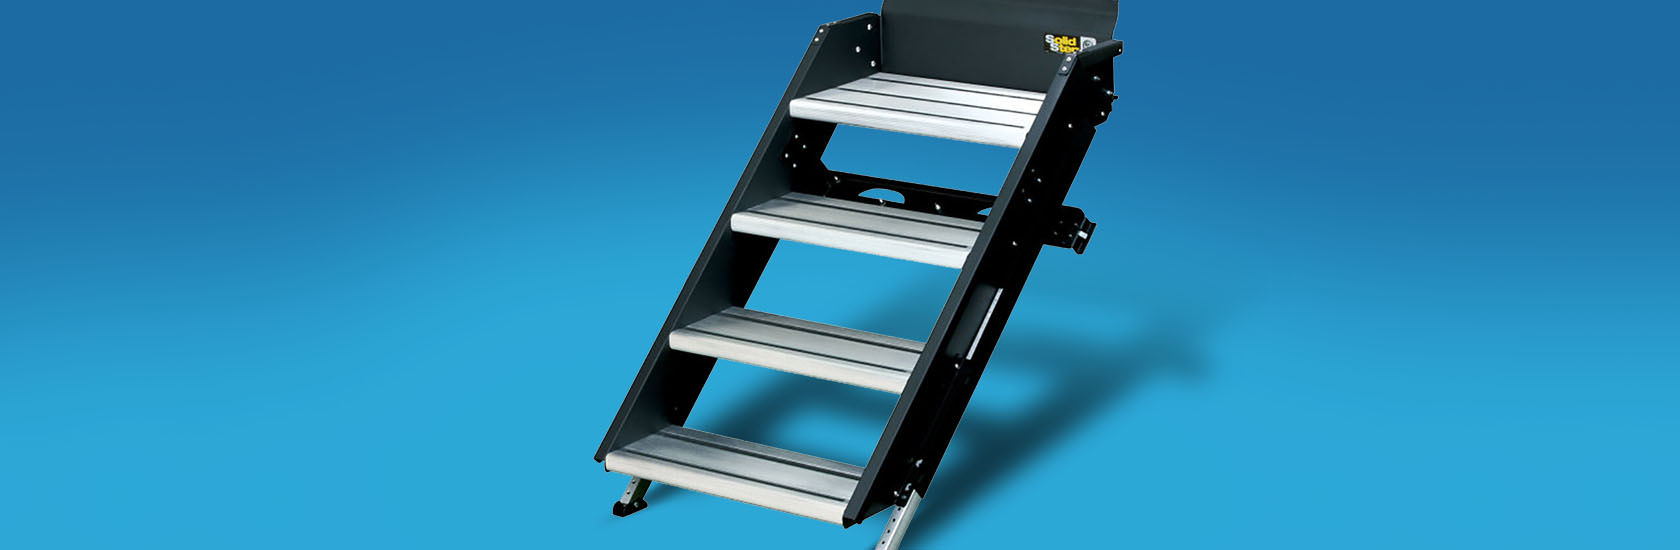 Shop Low Prices on RV Steps & Ladders